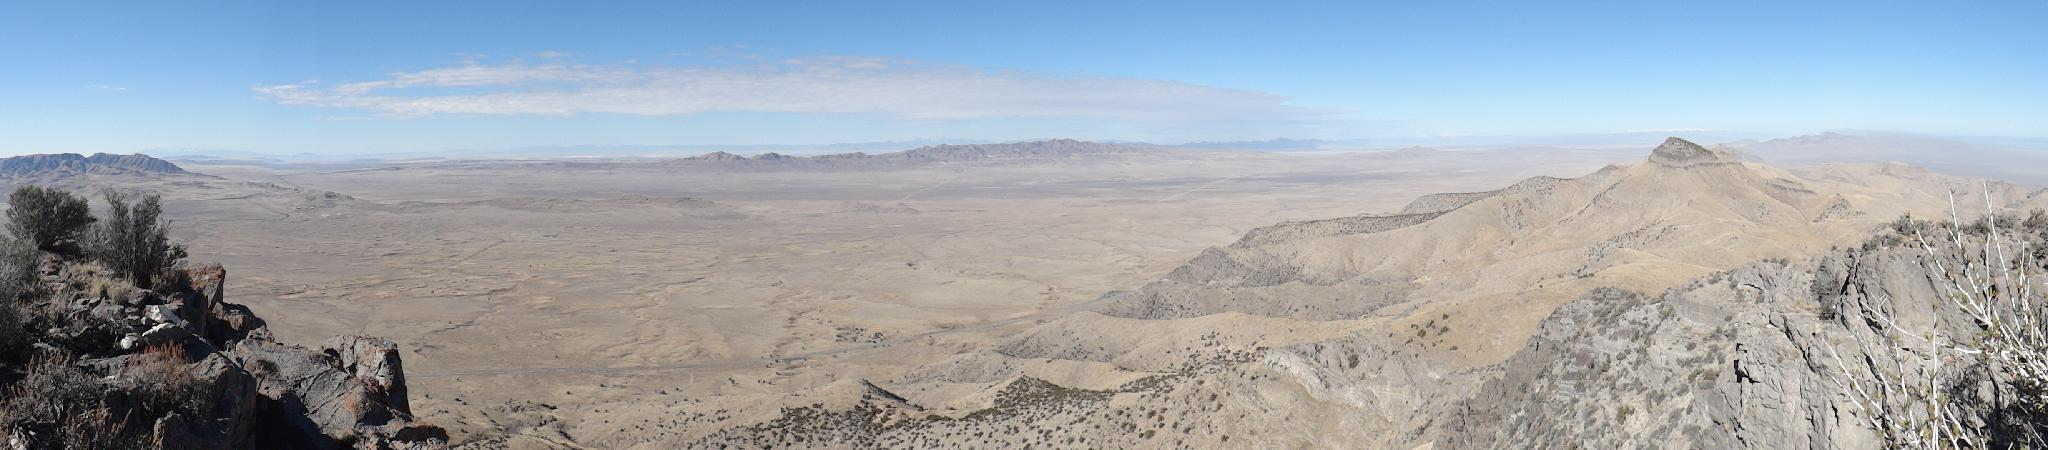 Looking west from the summit area of Craner Peak.